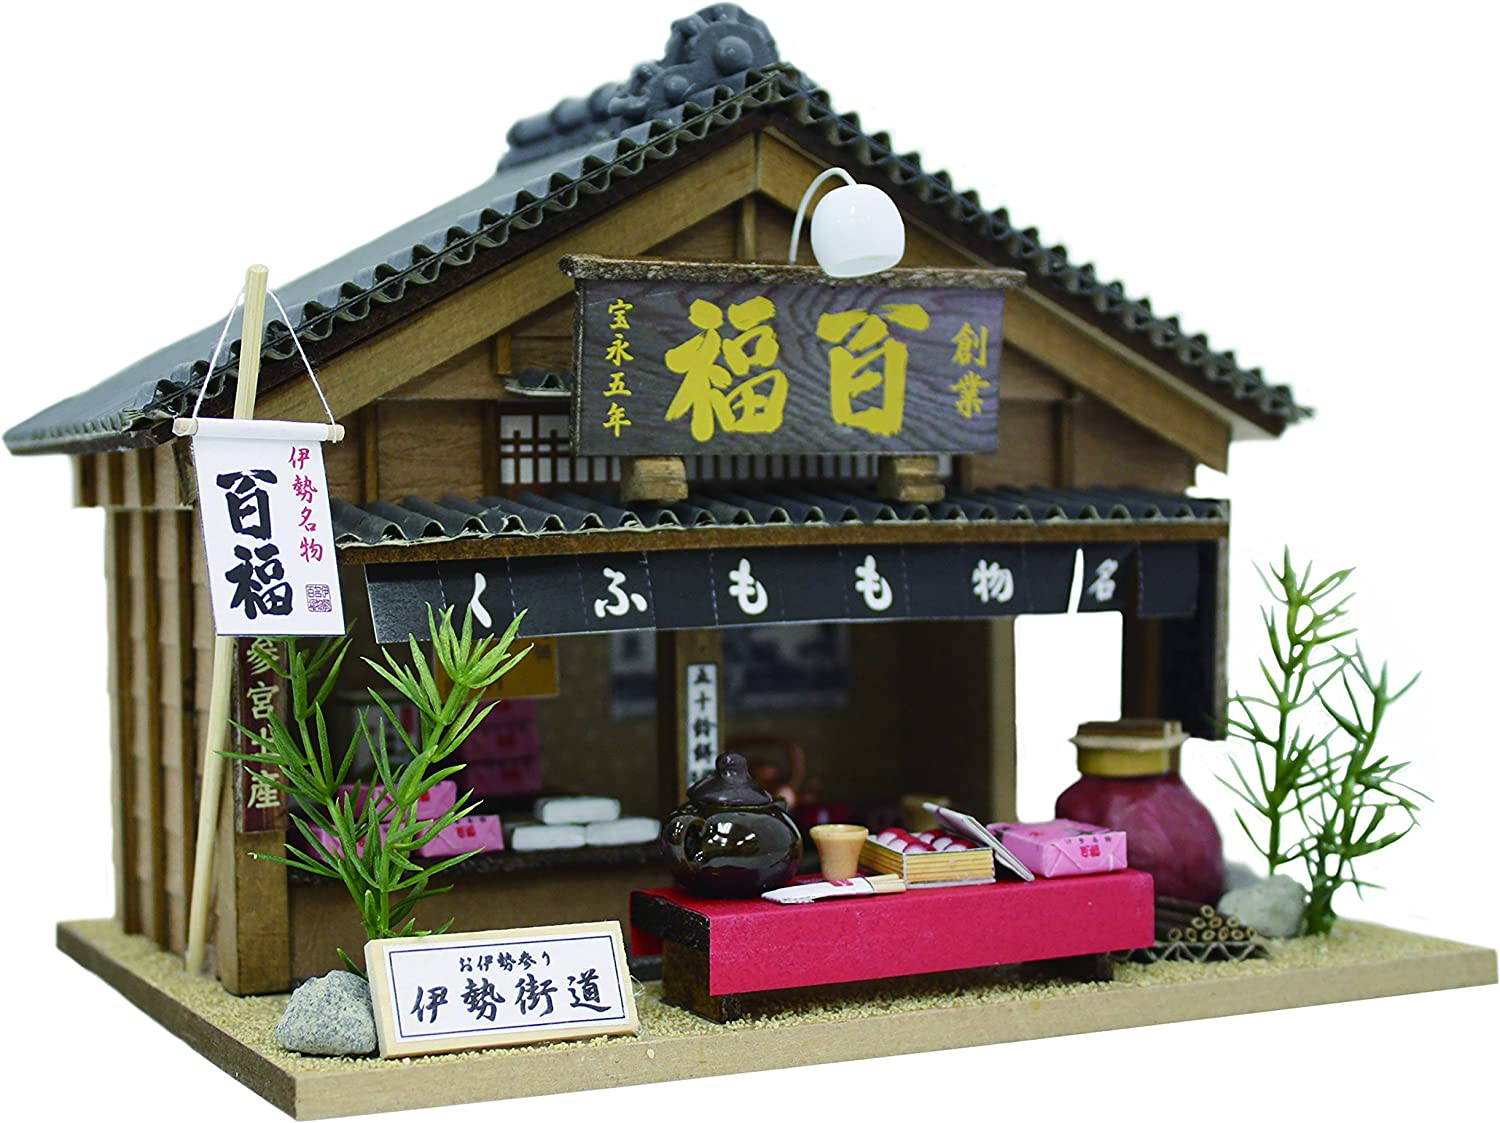 Japanese sweets shop 8682 of Ise specialty Ri Billy handmade Dollhouse Kit Road Bra  (japan import)